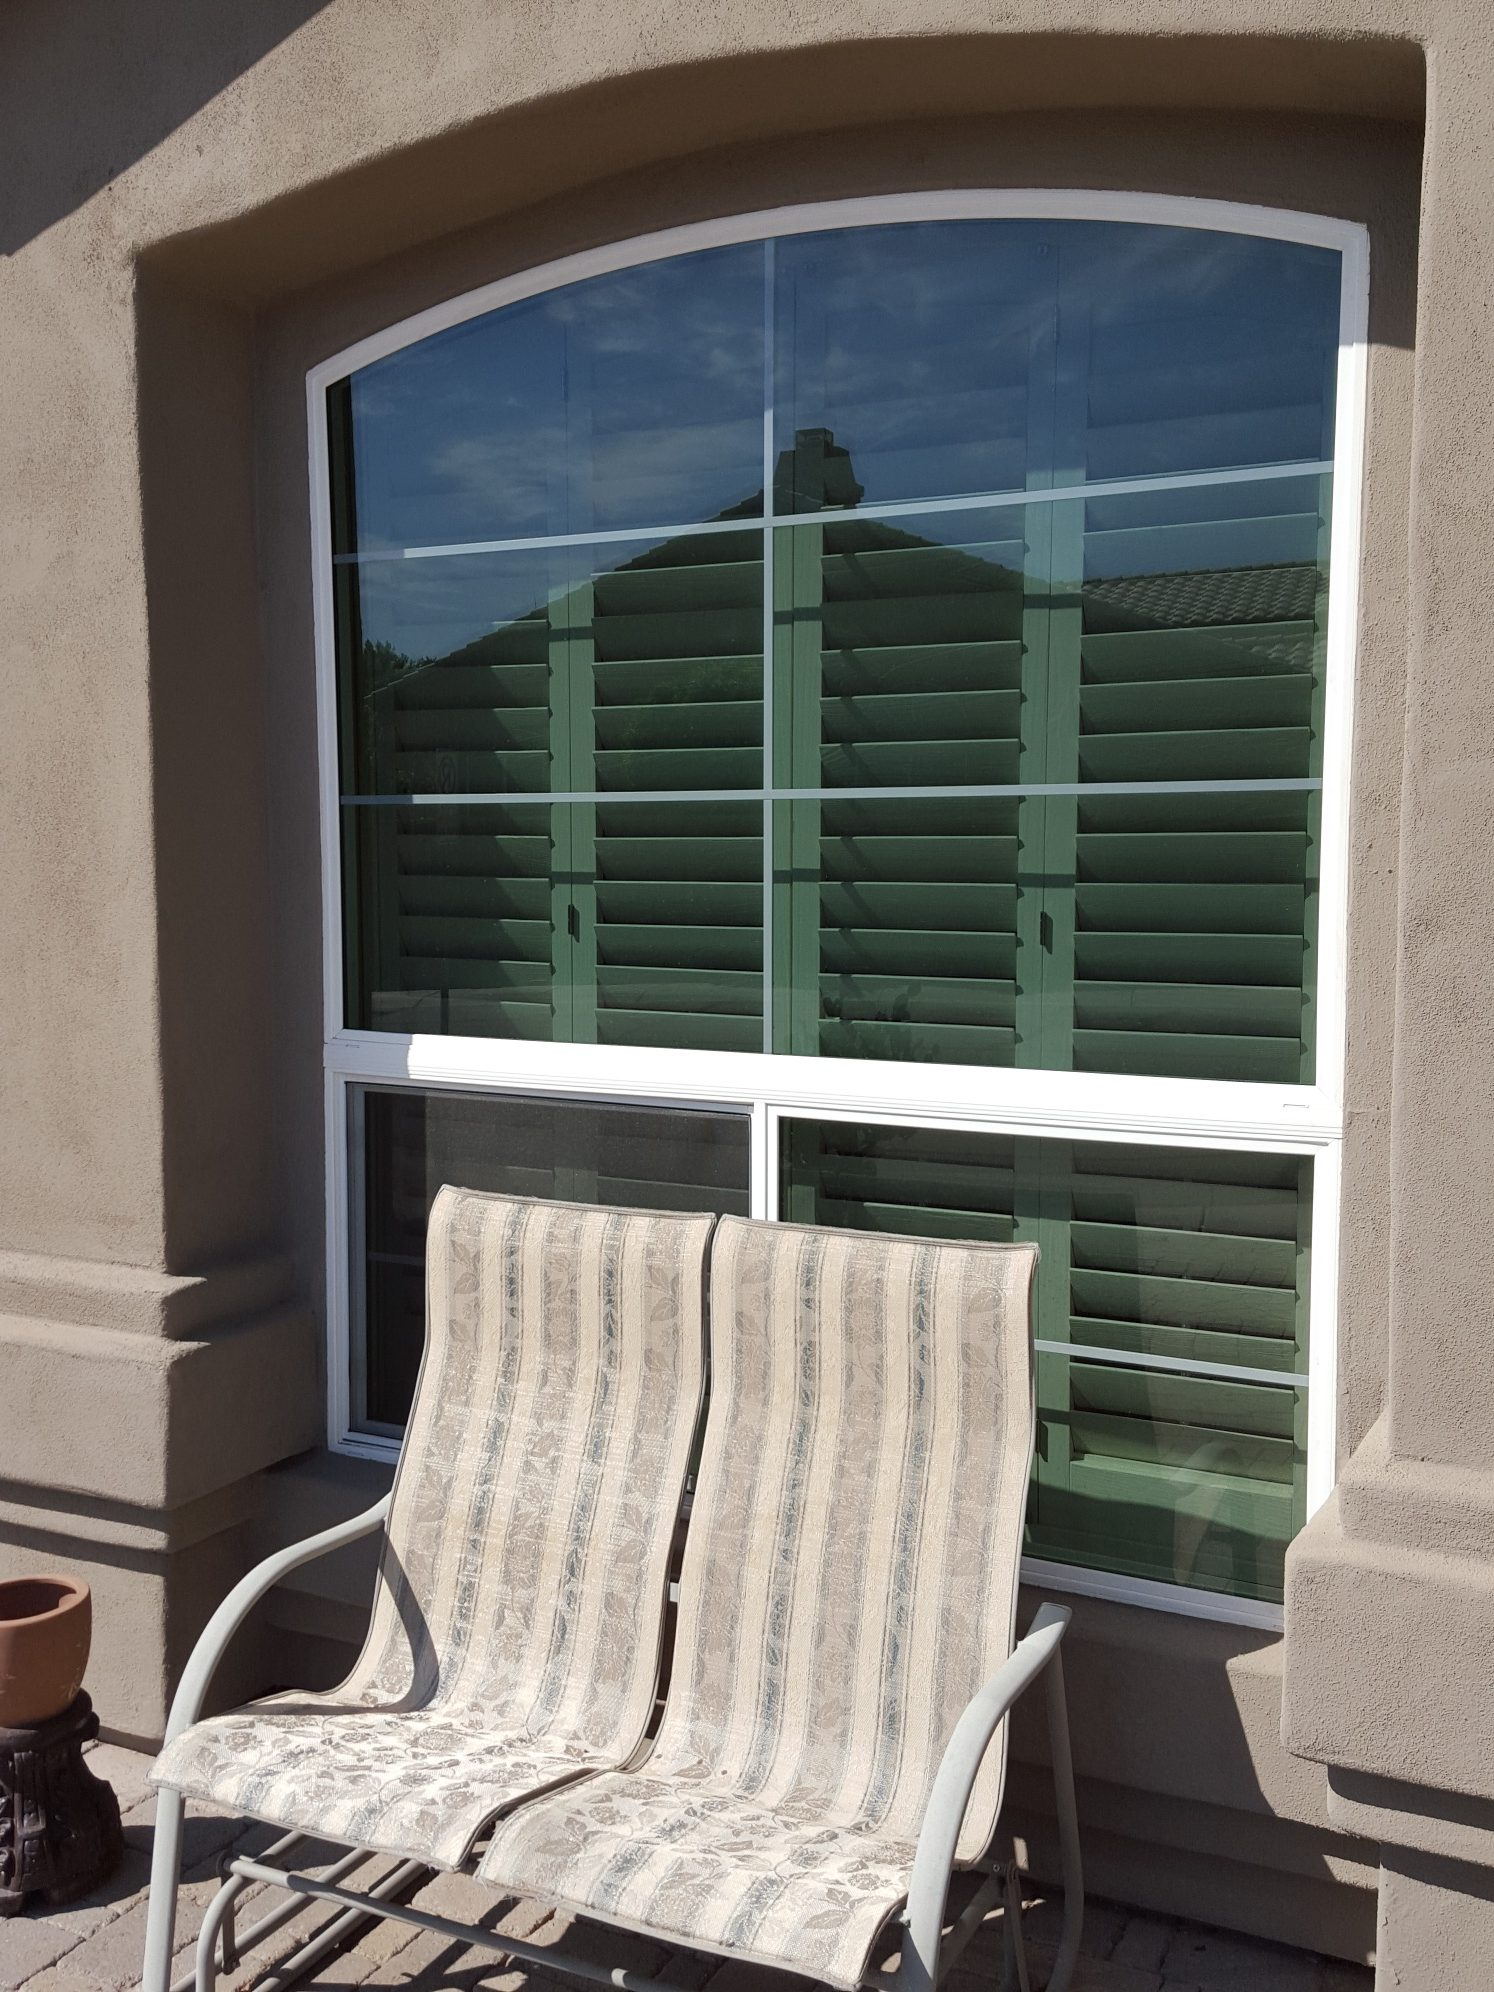 Simonton Daylight Max Replacement Windows in Ahwatukee Arizona